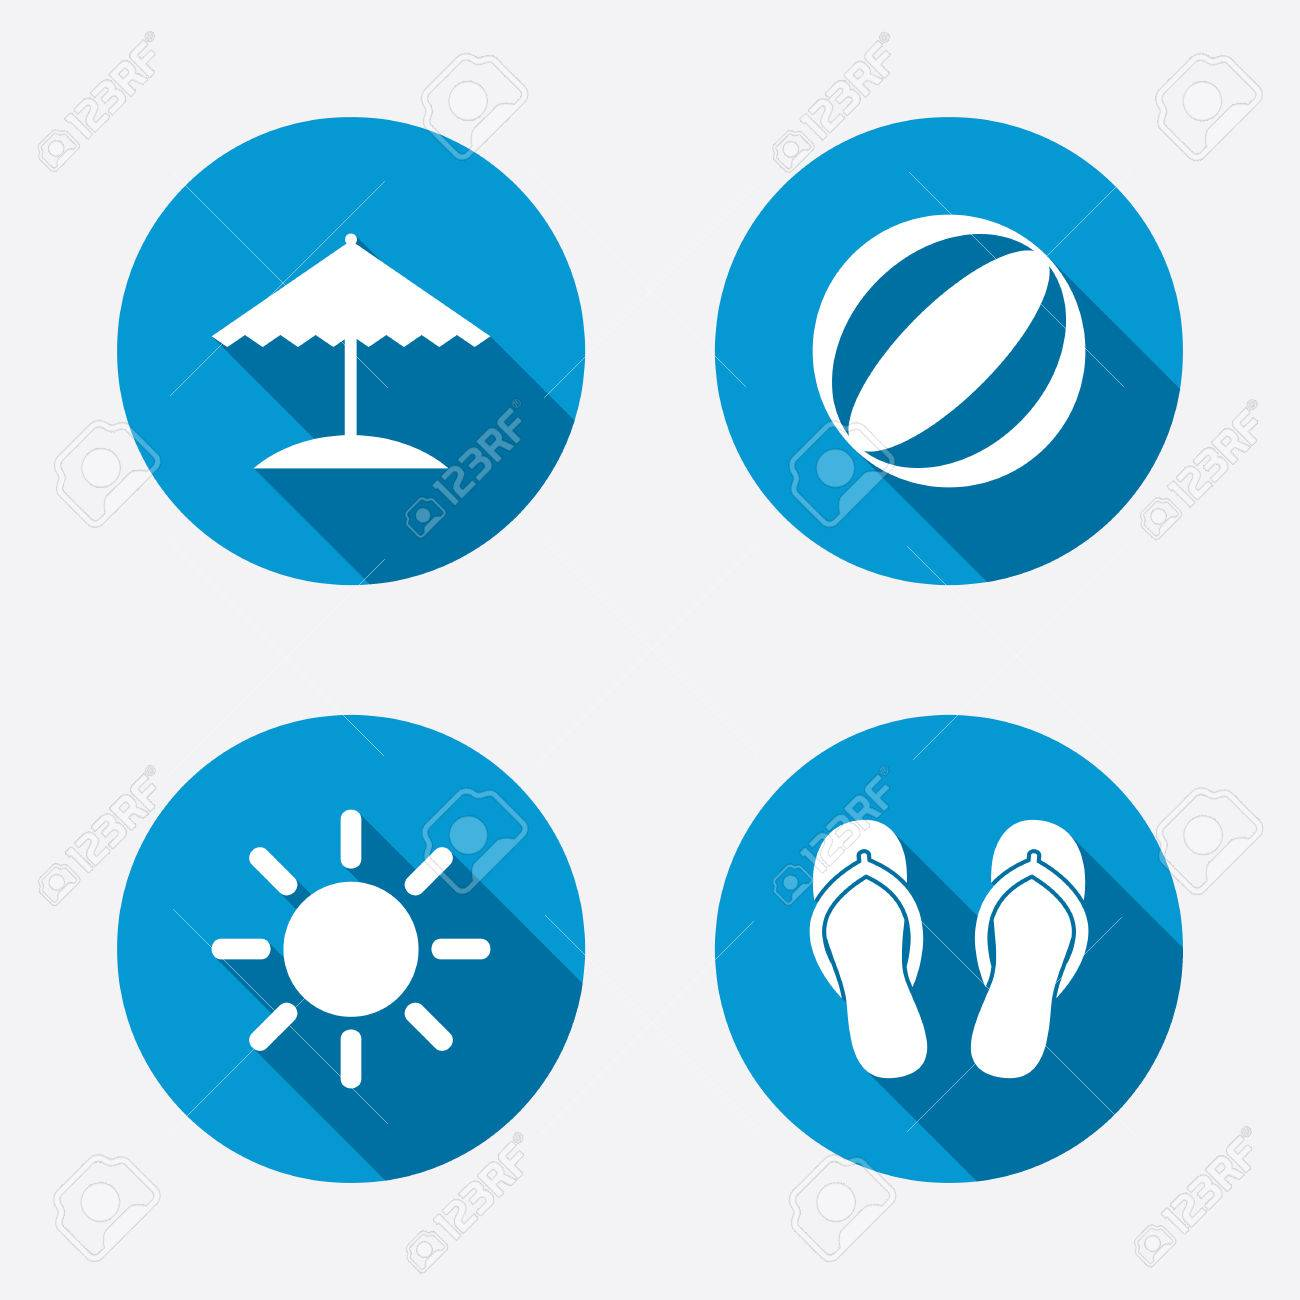 Sandals shoes holidays - Beach Holidays Icons Ball Umbrella And Flip Flops Sandals Signs Summer Sun